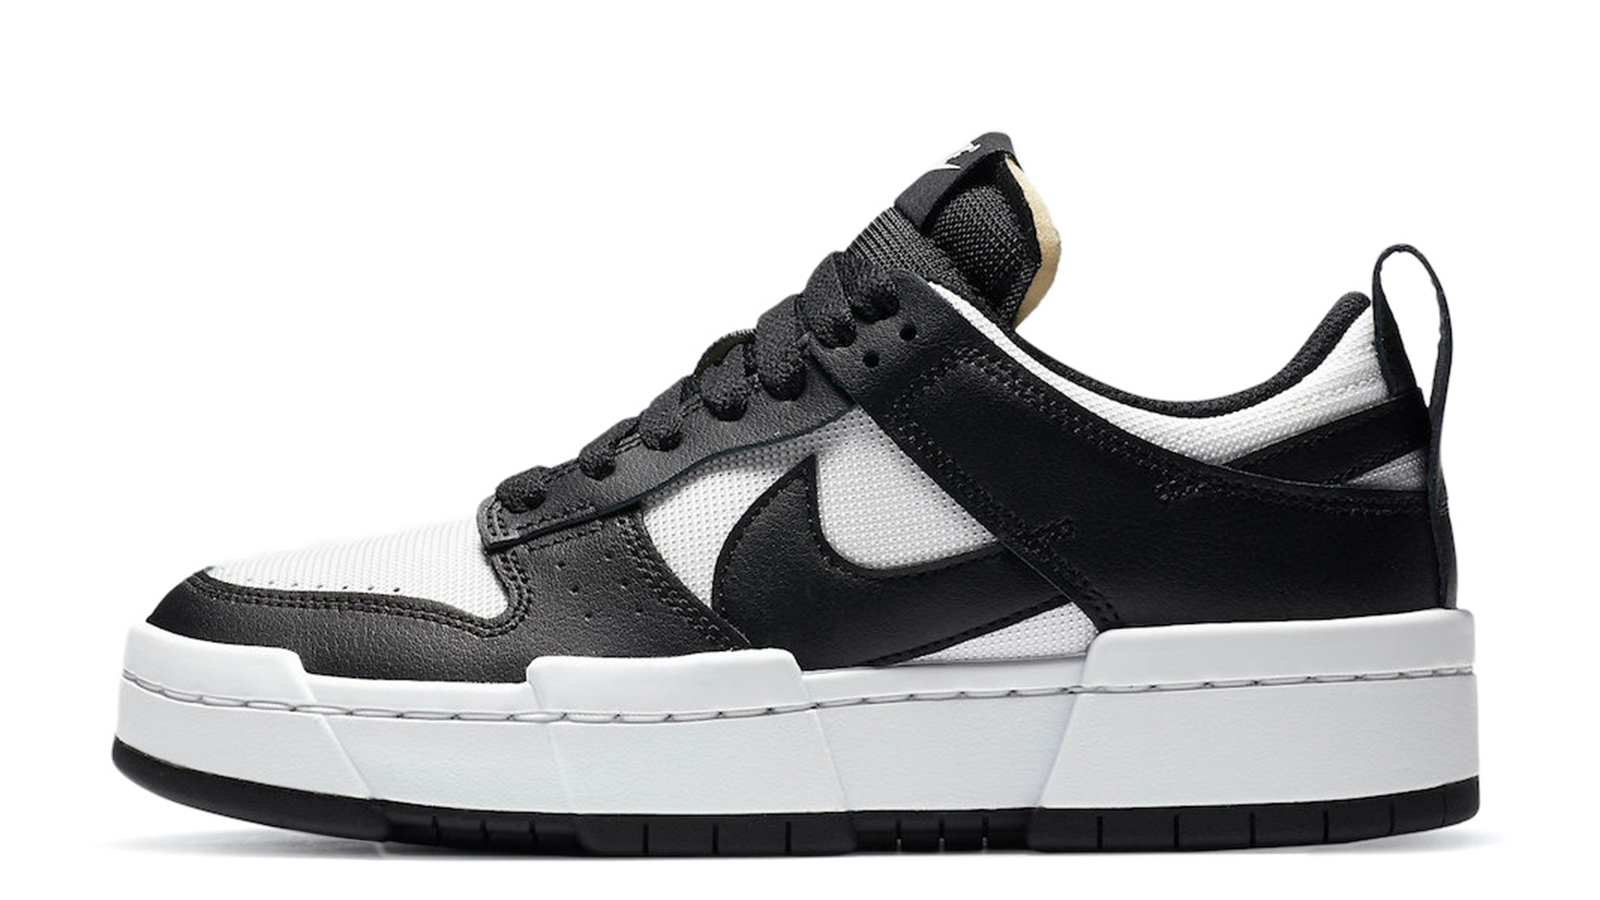 Nike Dunk Low Disrupt 'Panda' CK6654-102